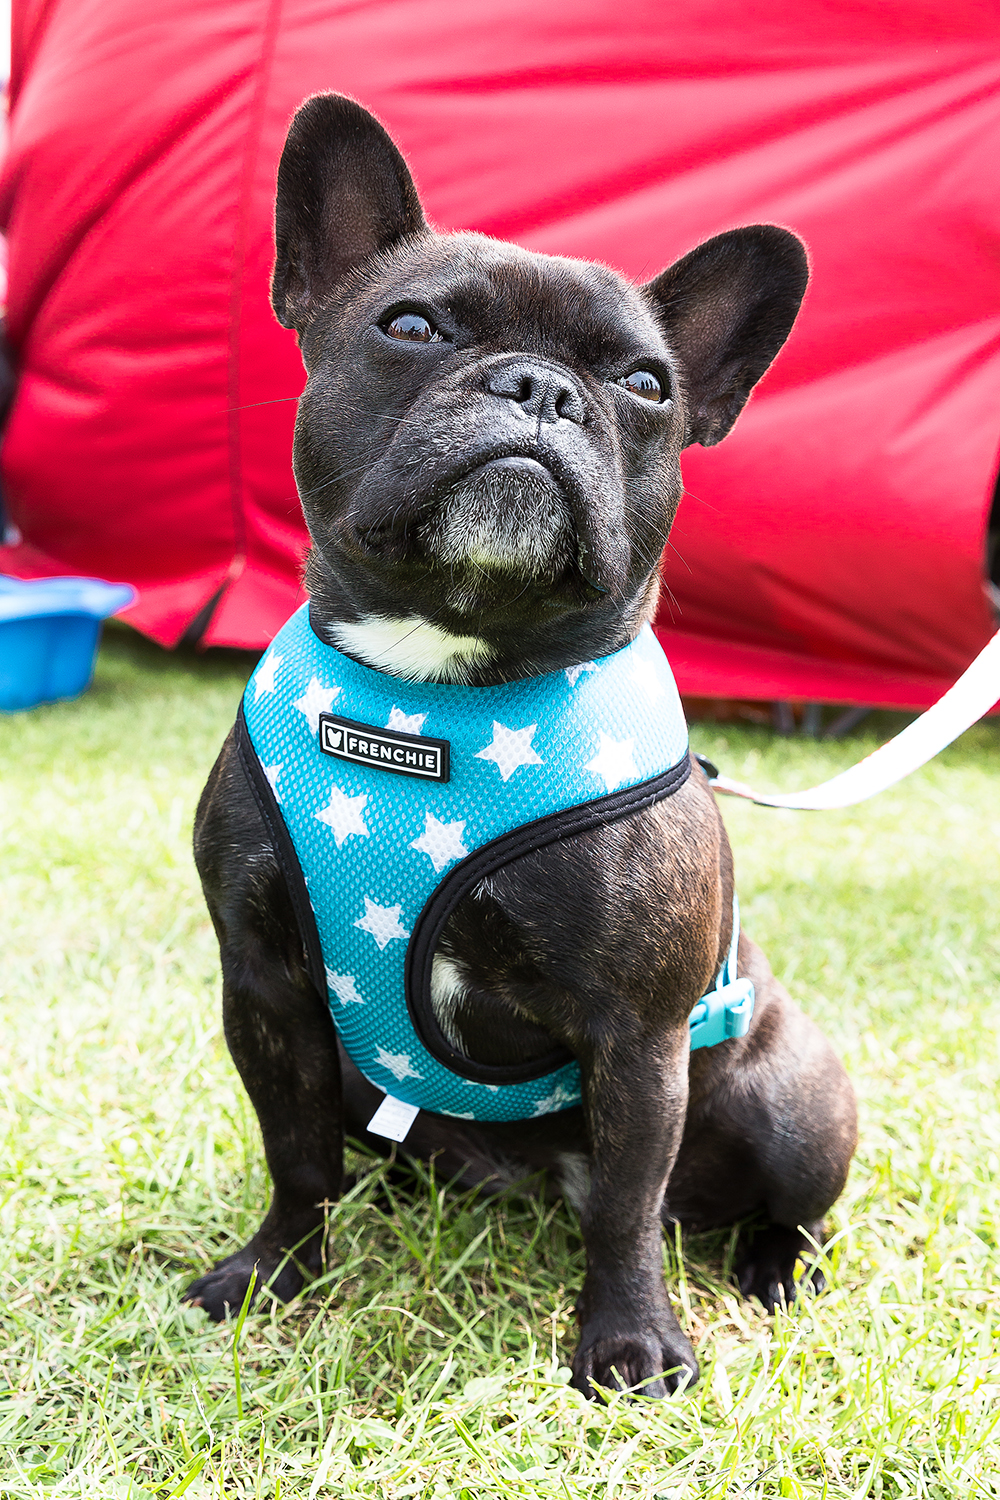 The french Bulldog at the Bulldog Bonanza